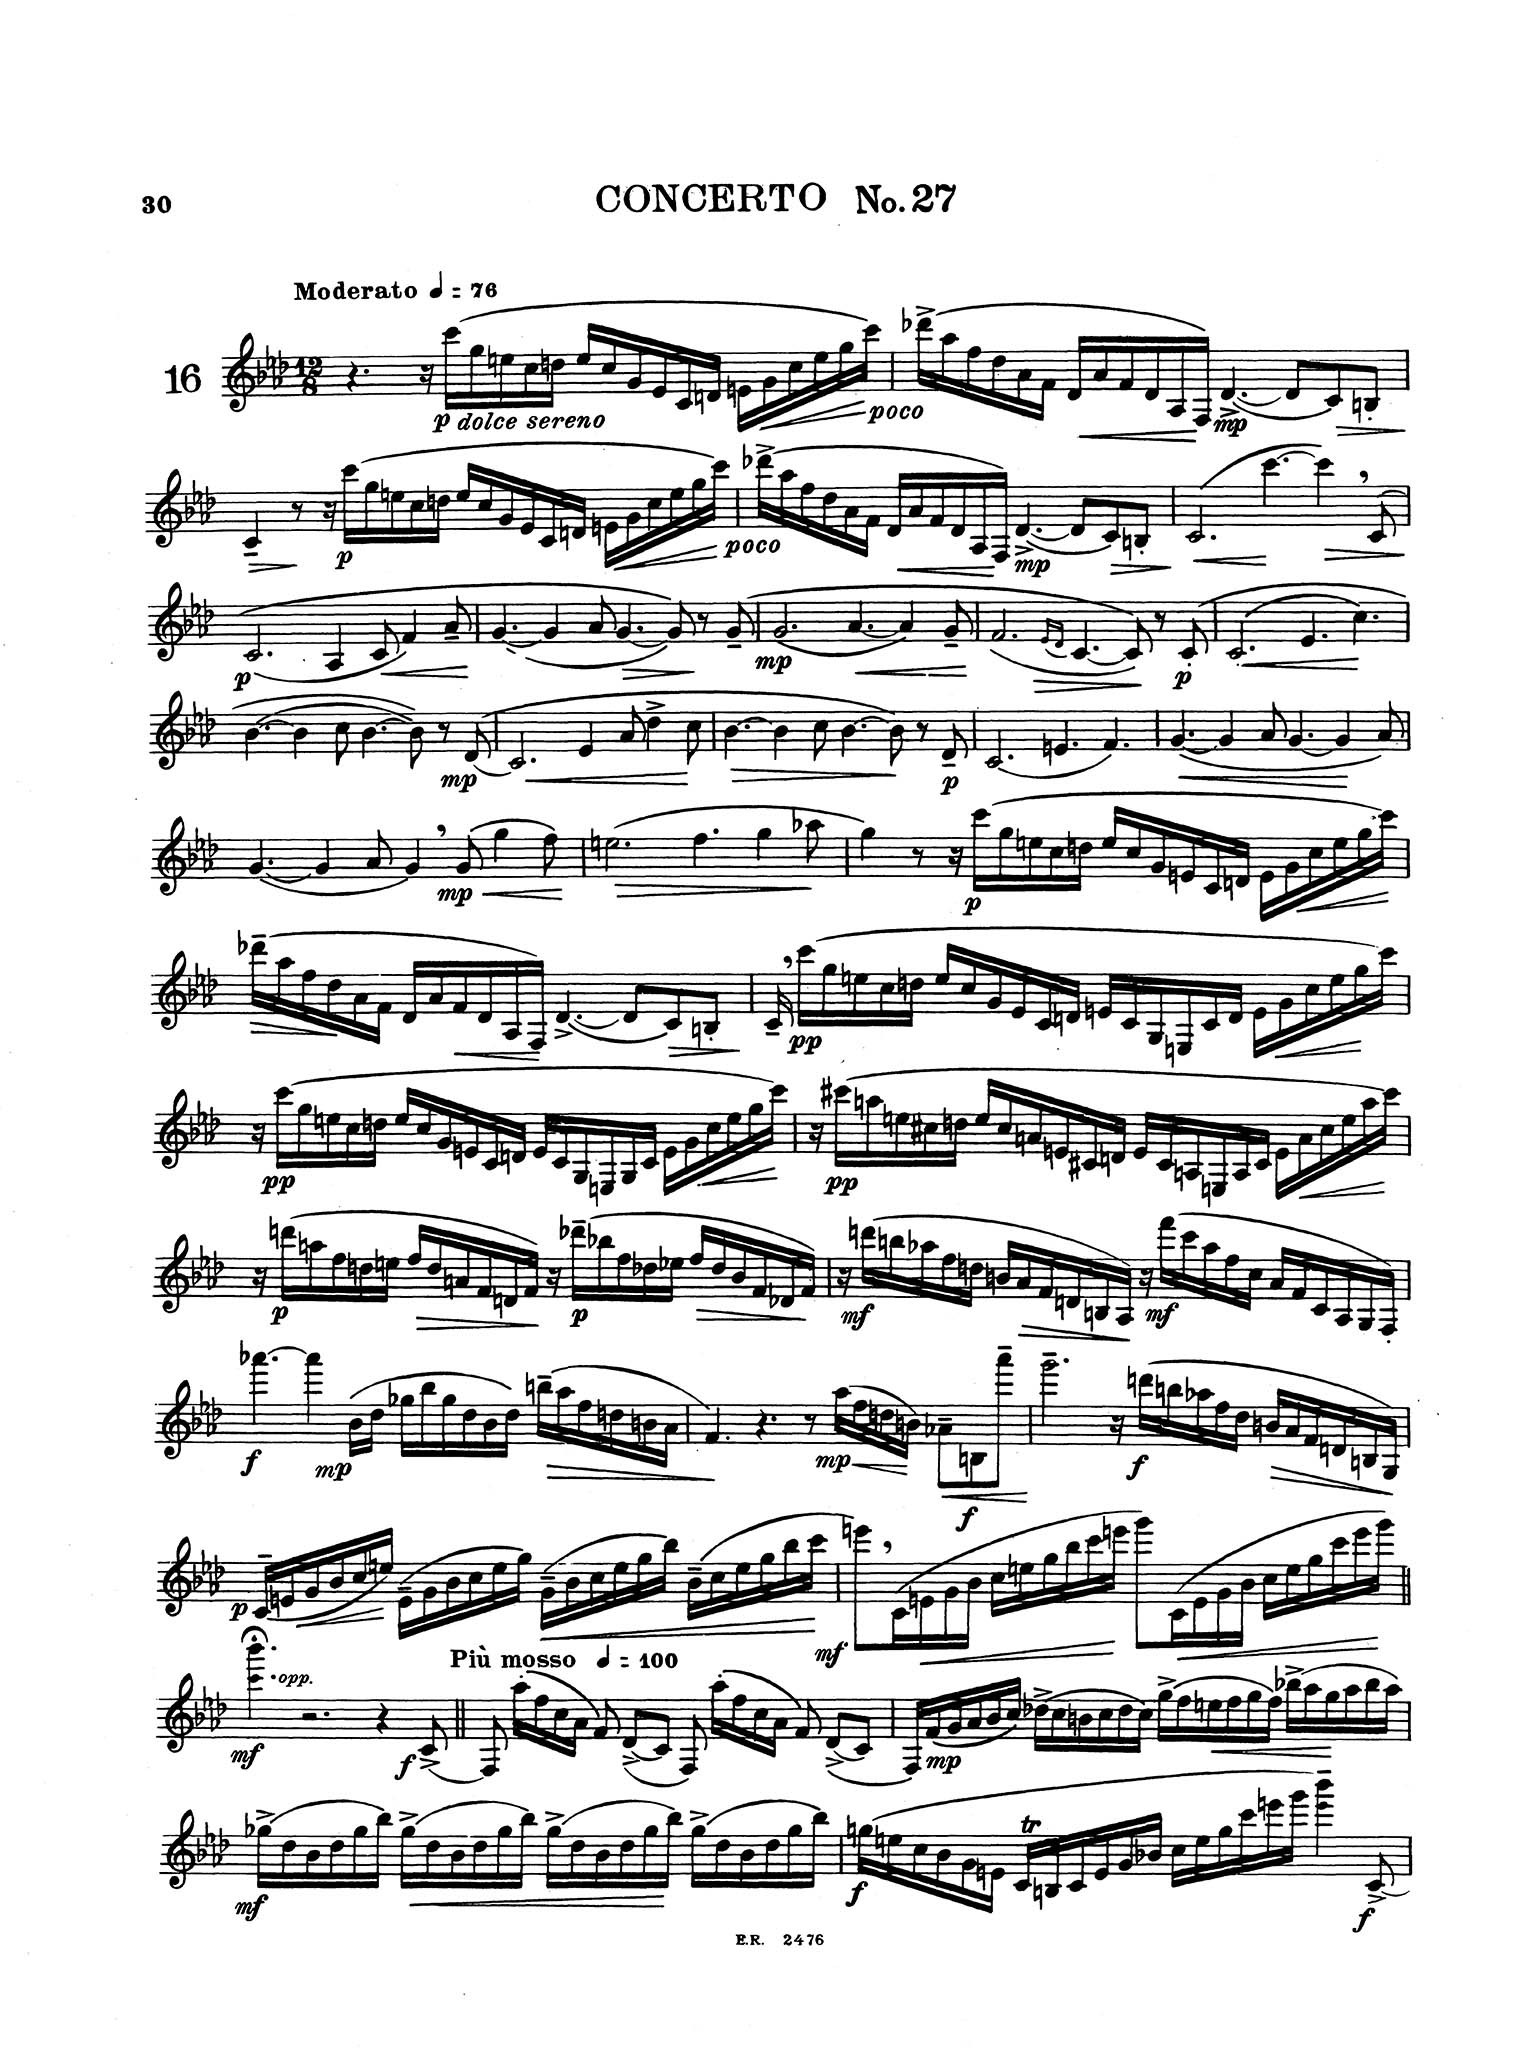 16 Grand Concert Studies for Clarinet - Page 30